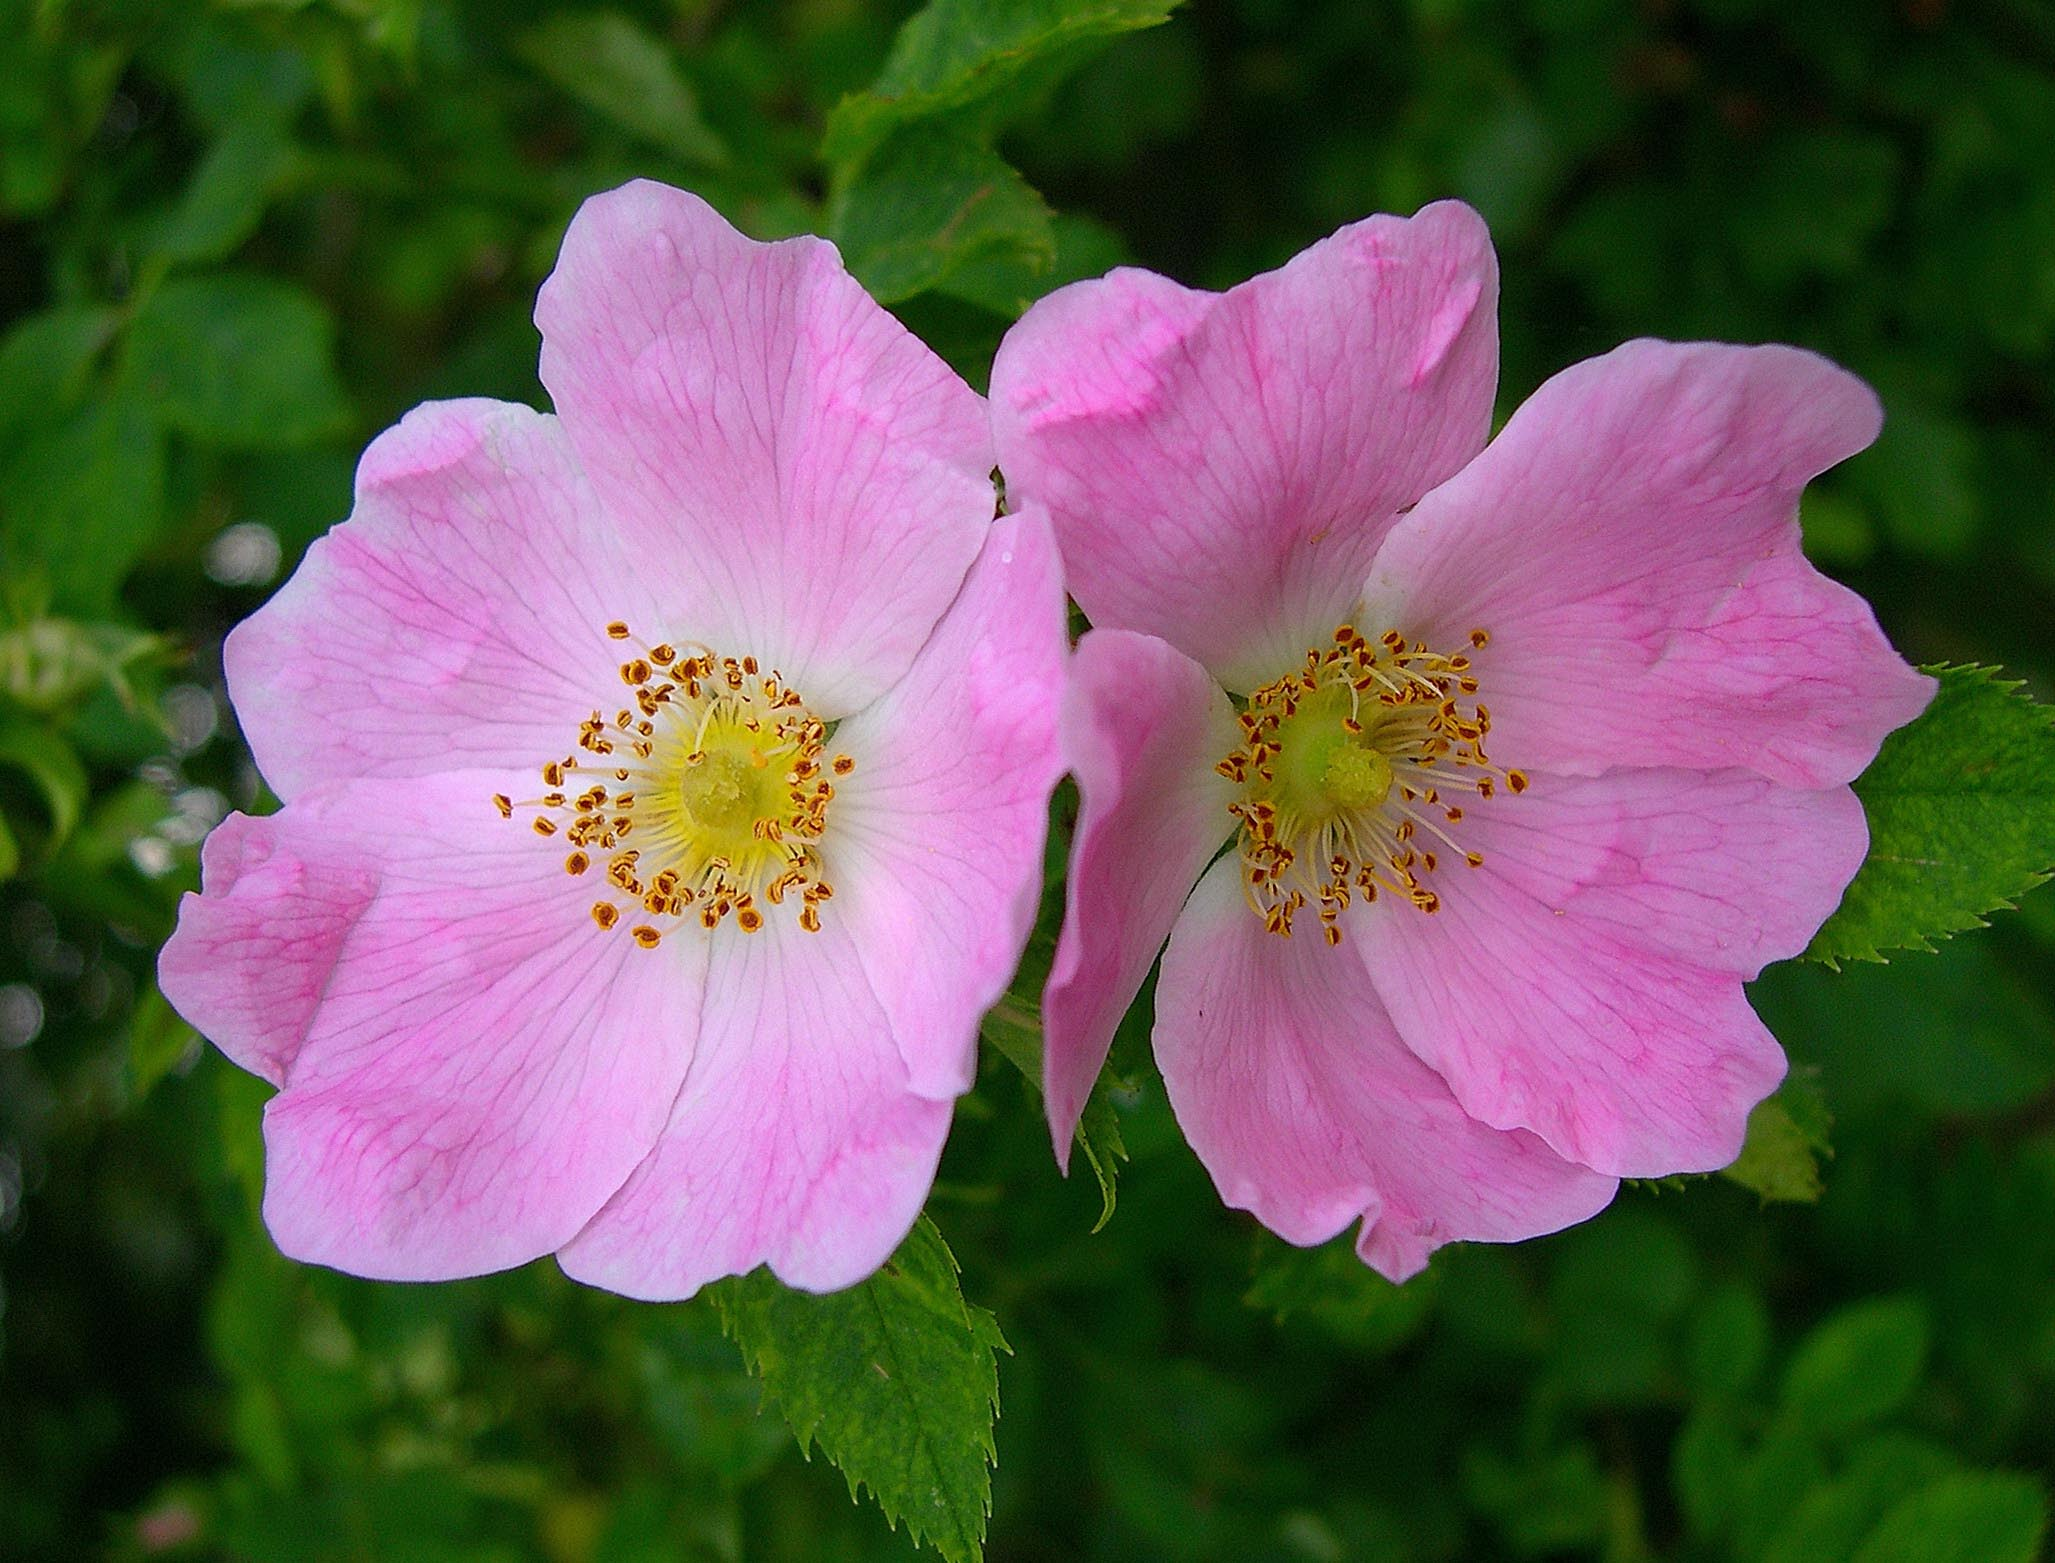 Pink dog rose flowers